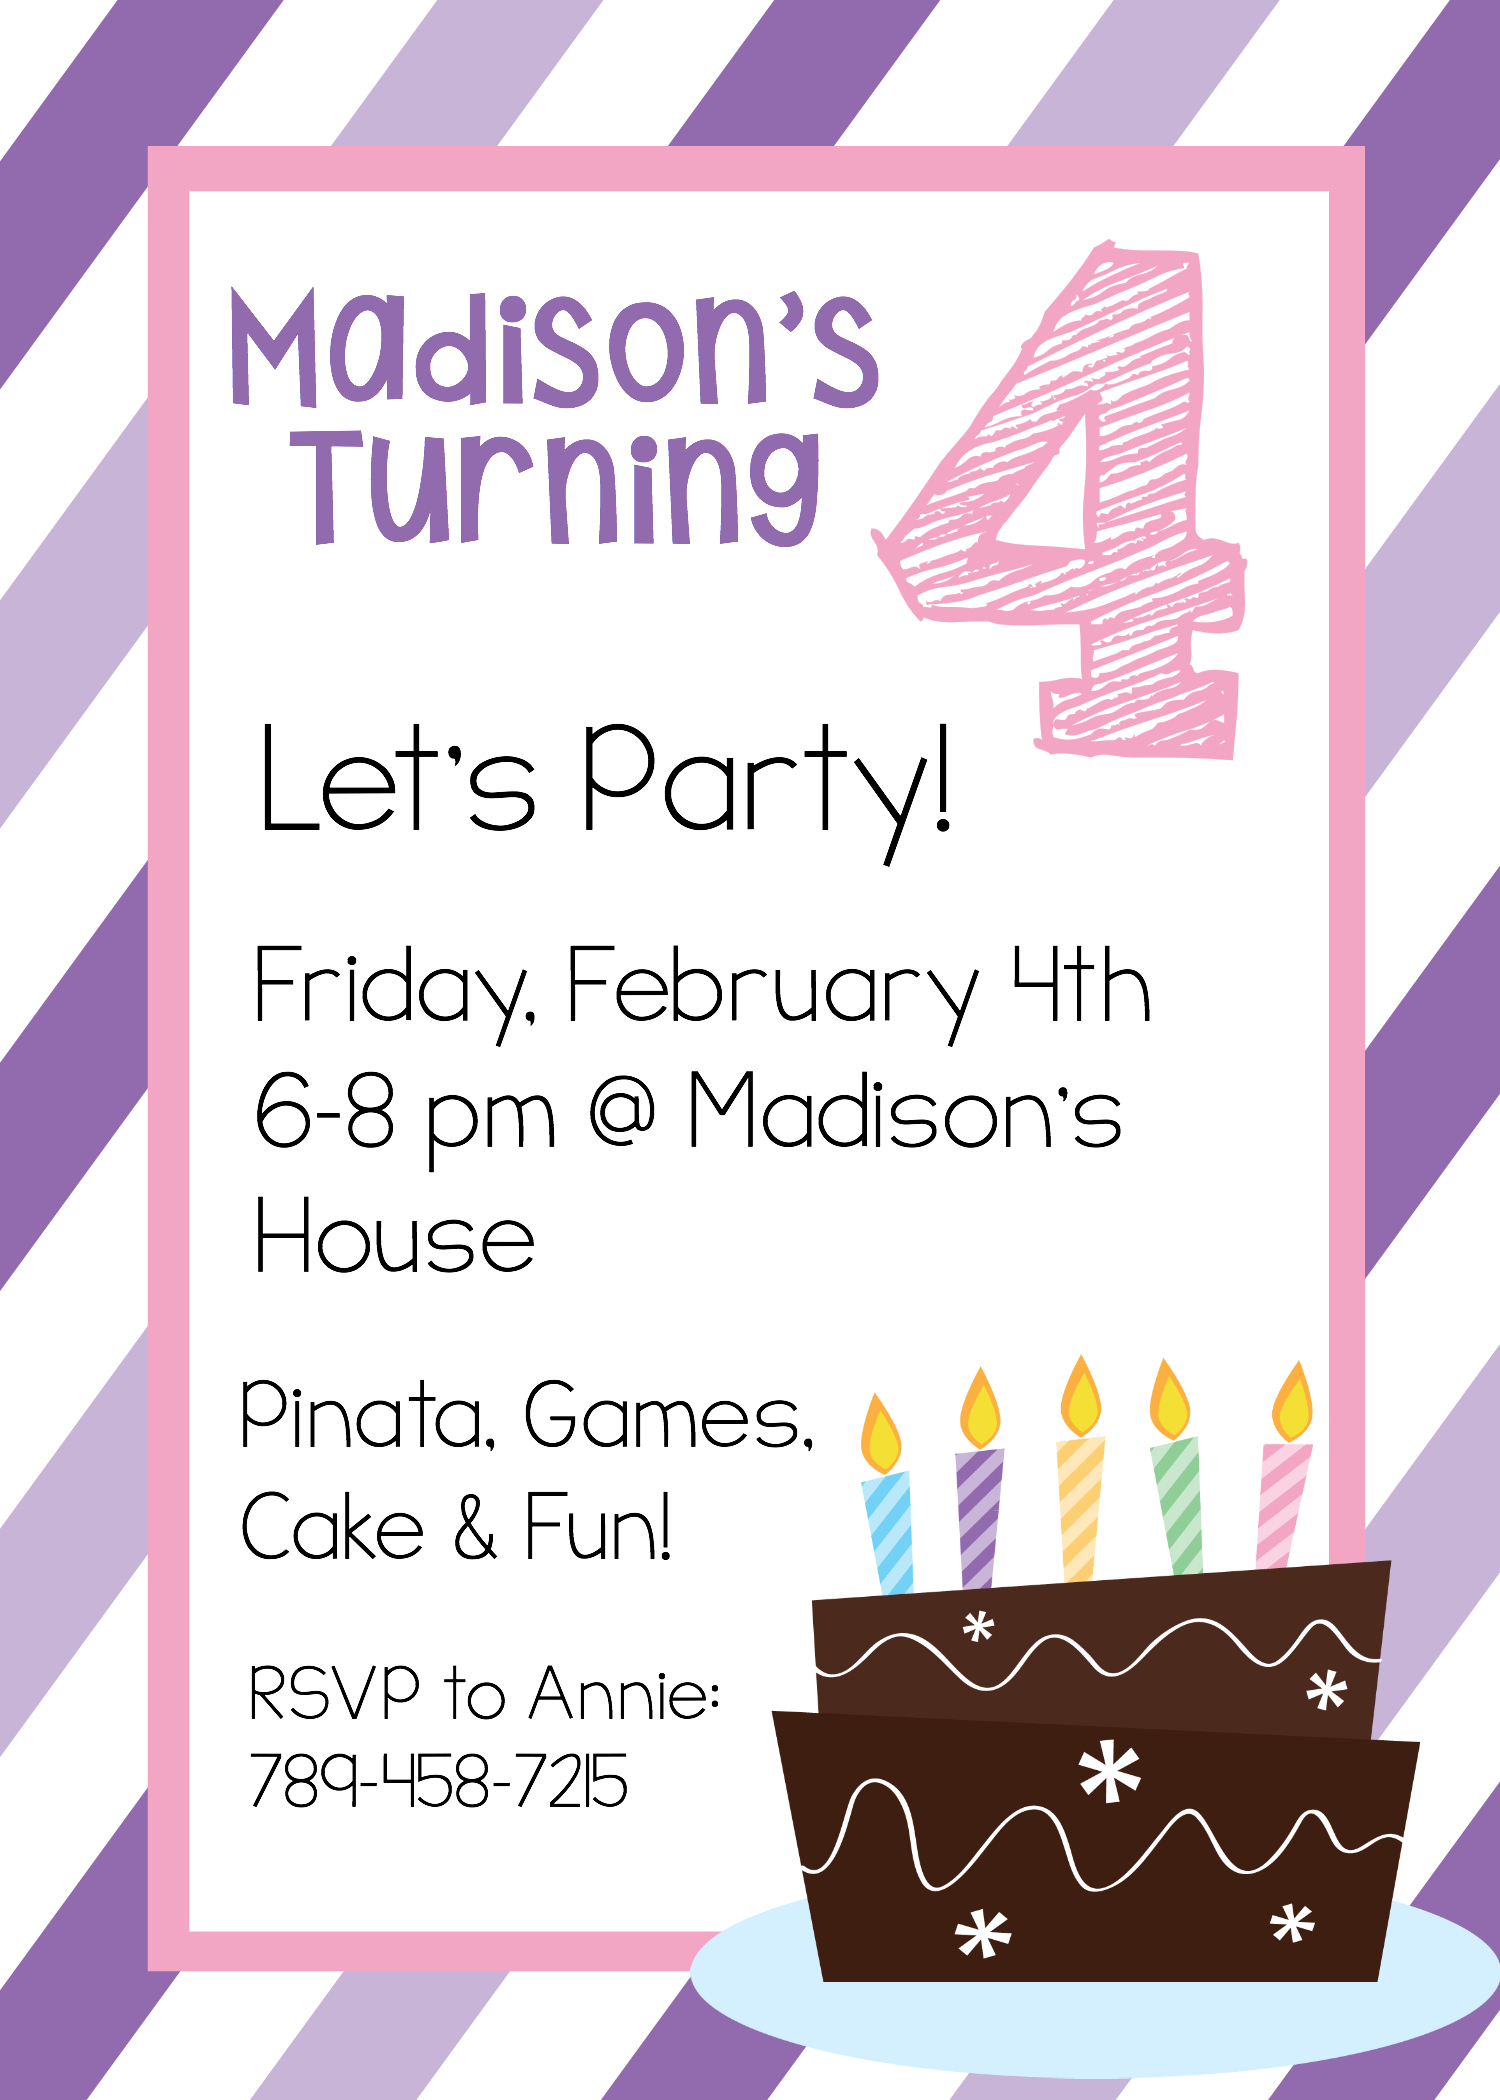 Free Printable Birthday Invitation Templates - Birthday party invitations for kids free templates